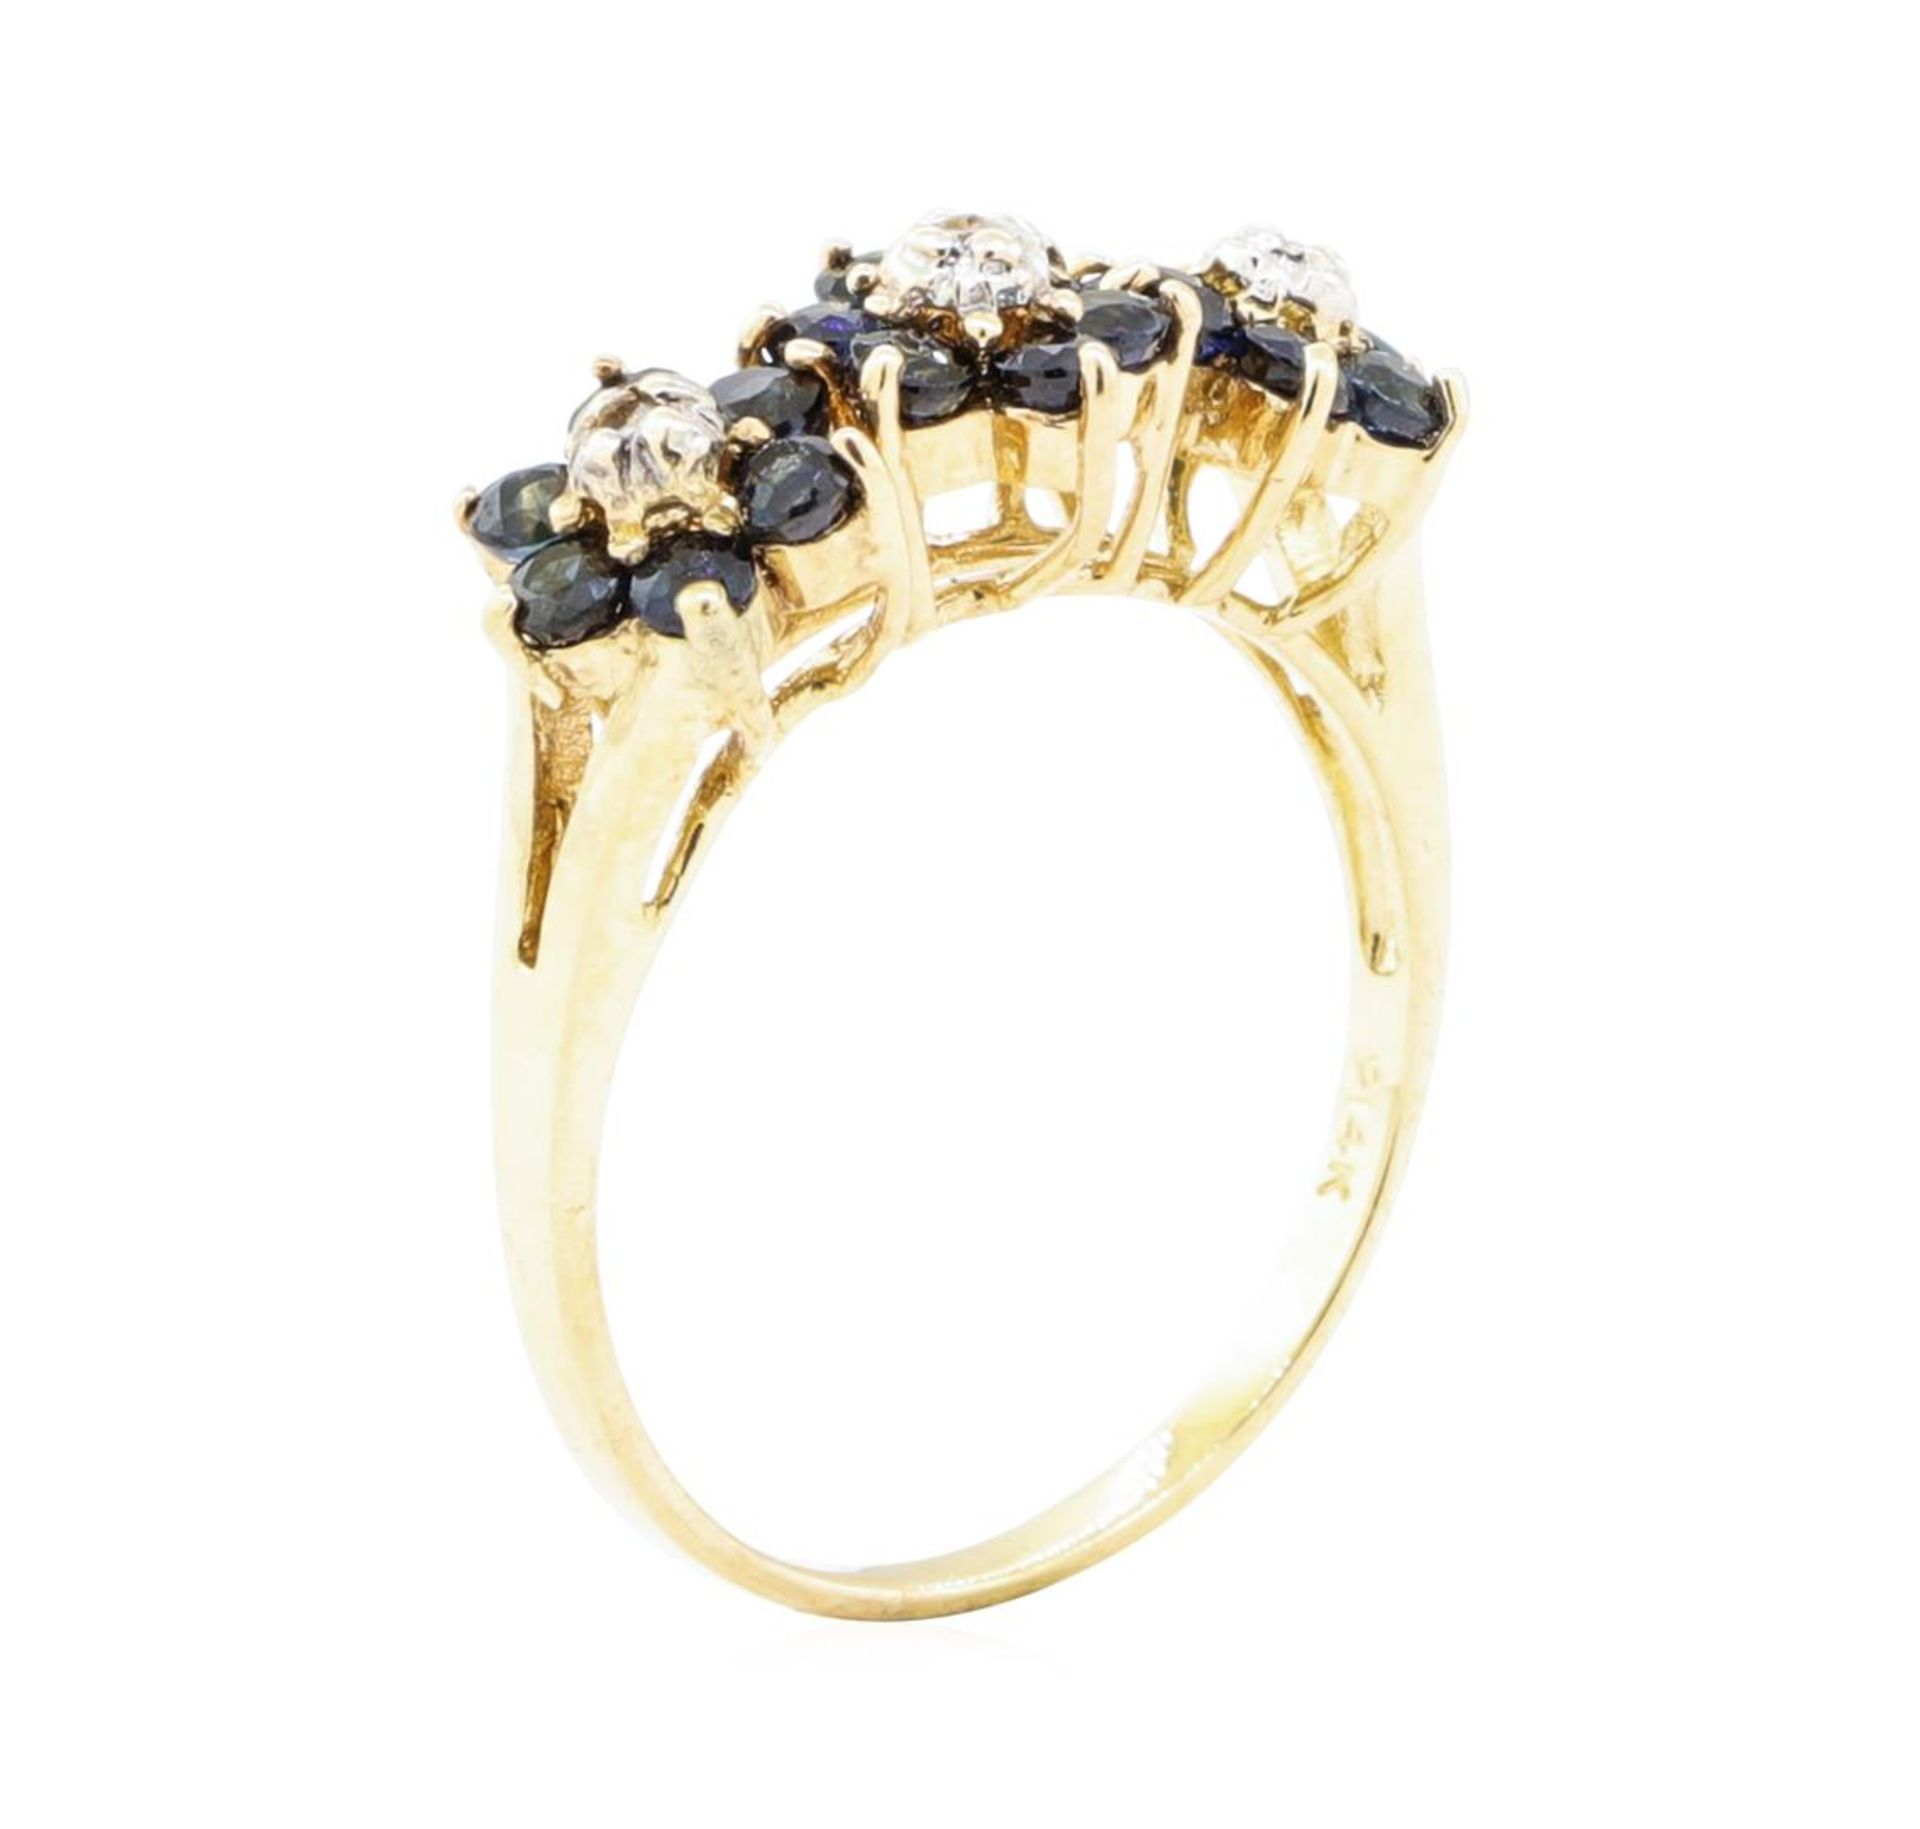 1.05ctw Sapphire and Diamond Ring - 14KT Yellow Gold - Image 4 of 4